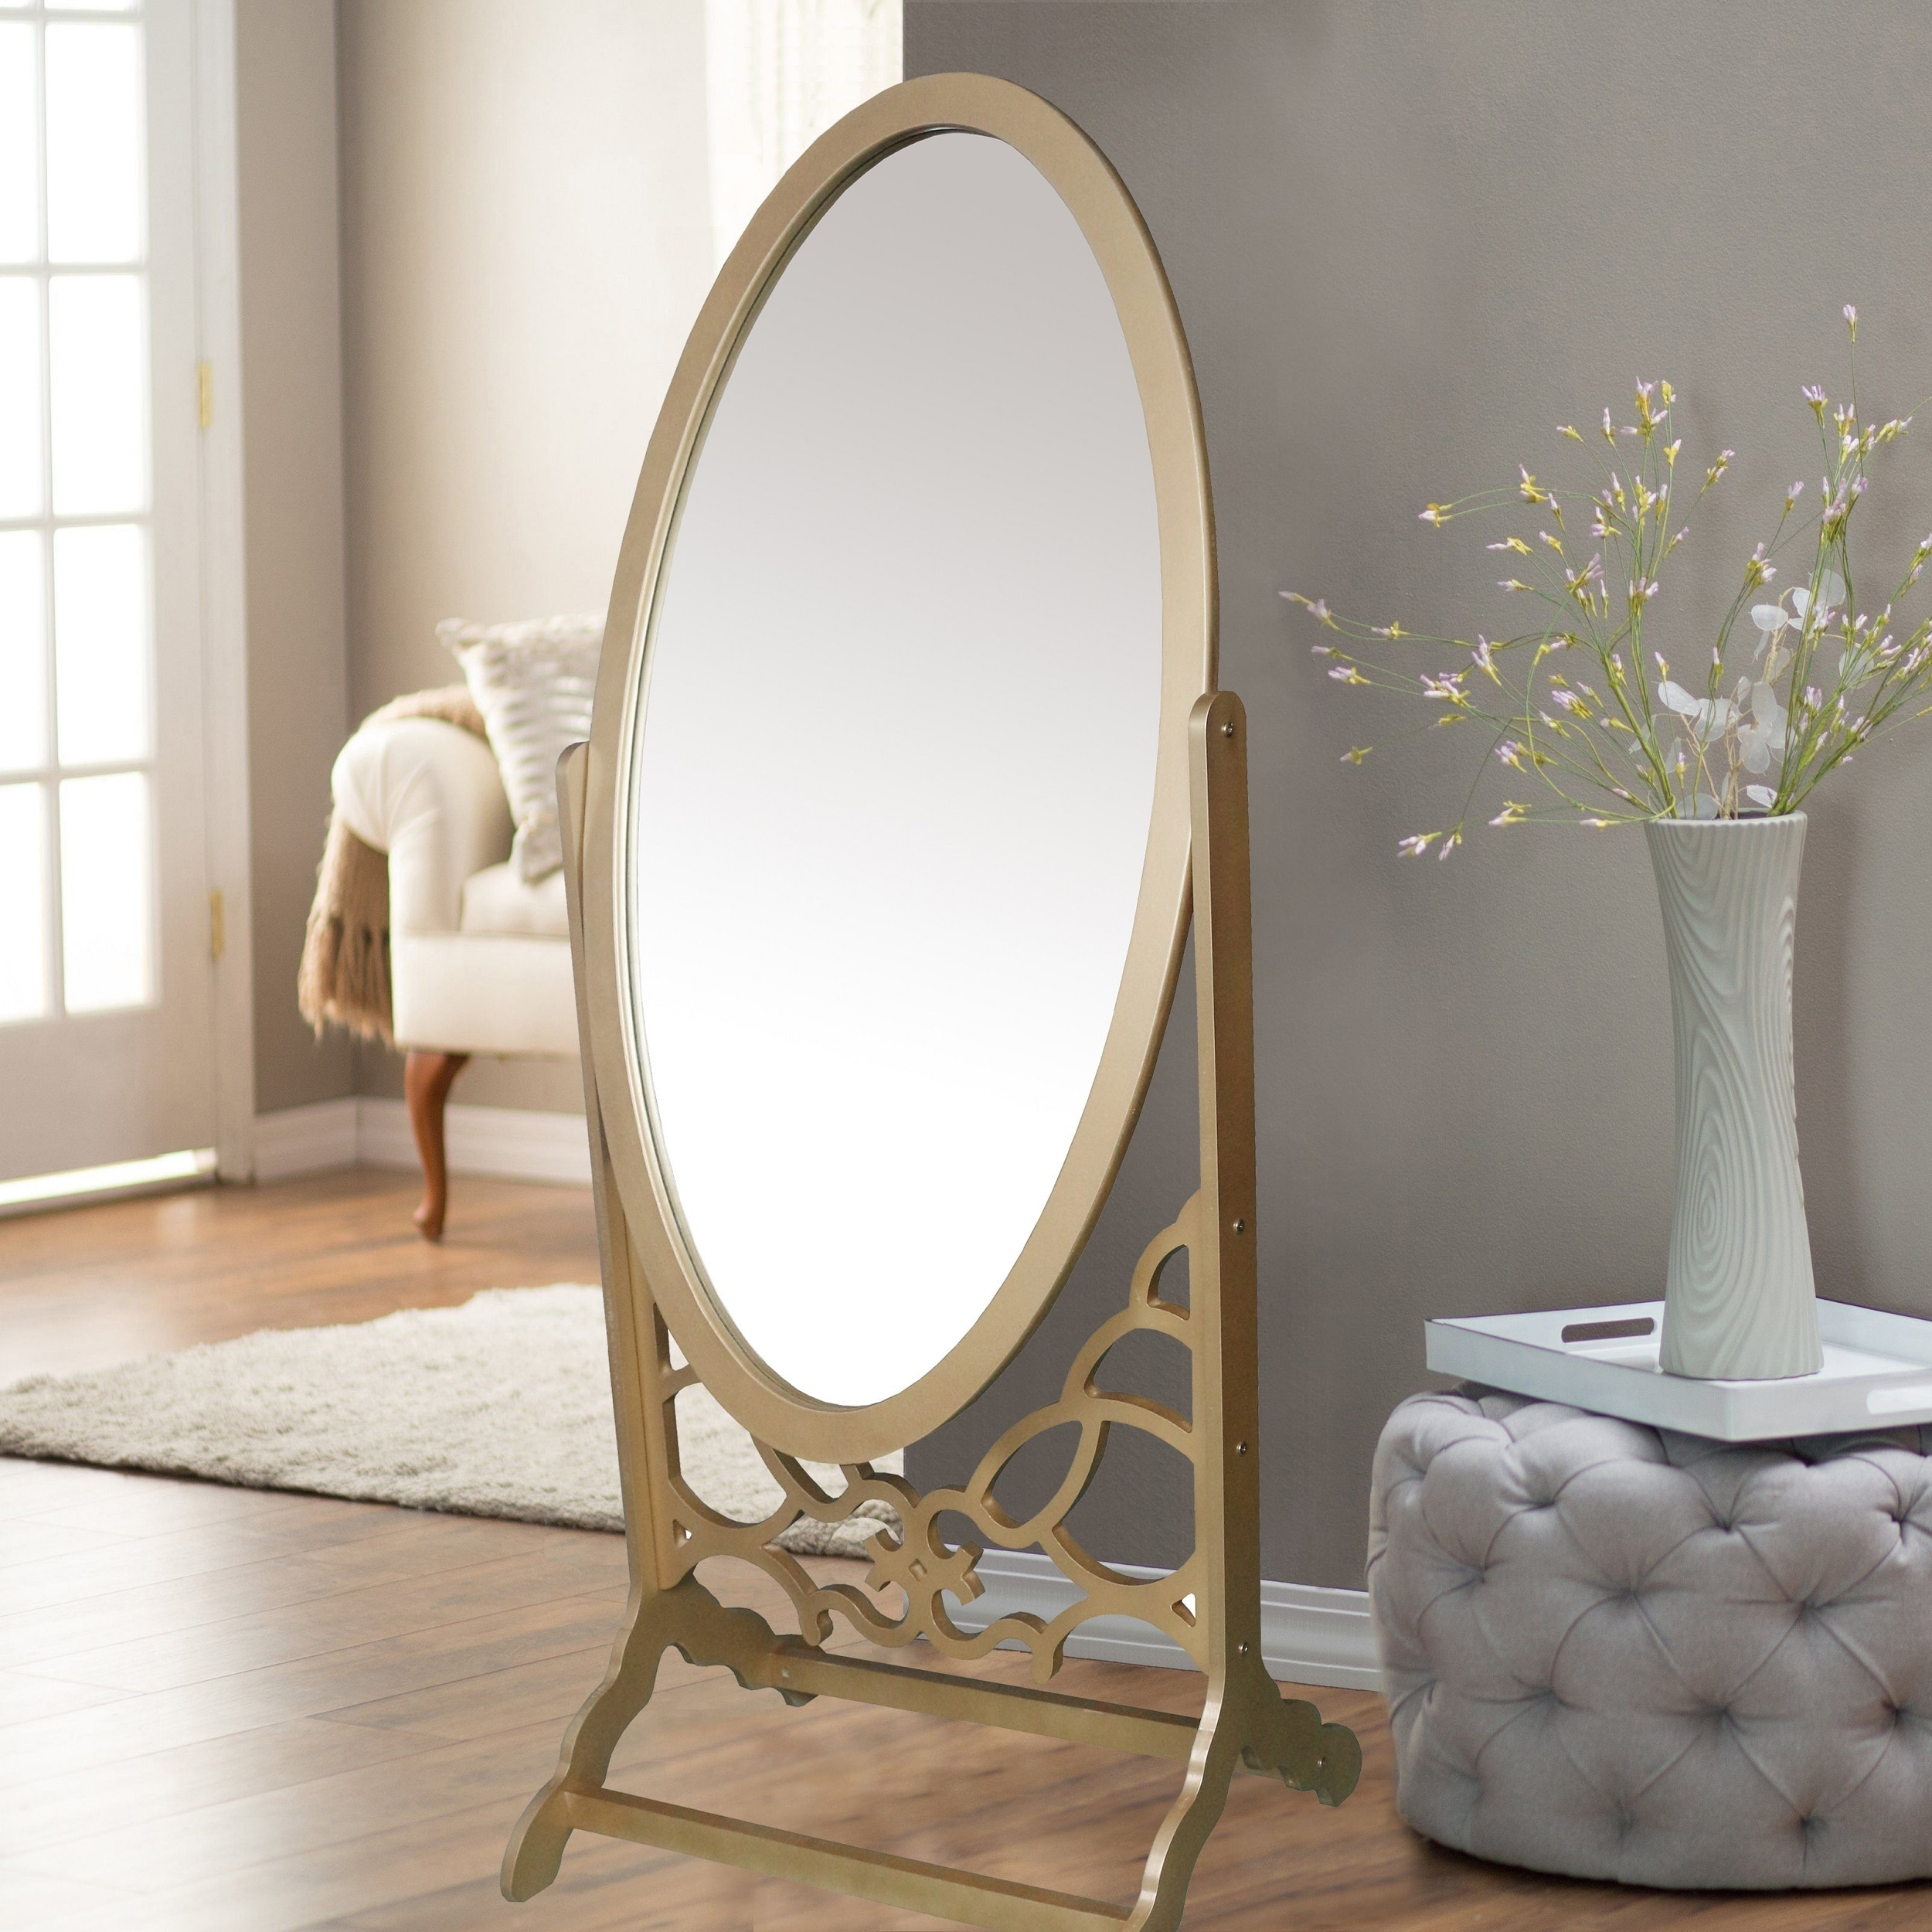 Shop chic home york mirror modern free standing spindle accent legs floor mirror on sale free shipping today overstock com 17127614